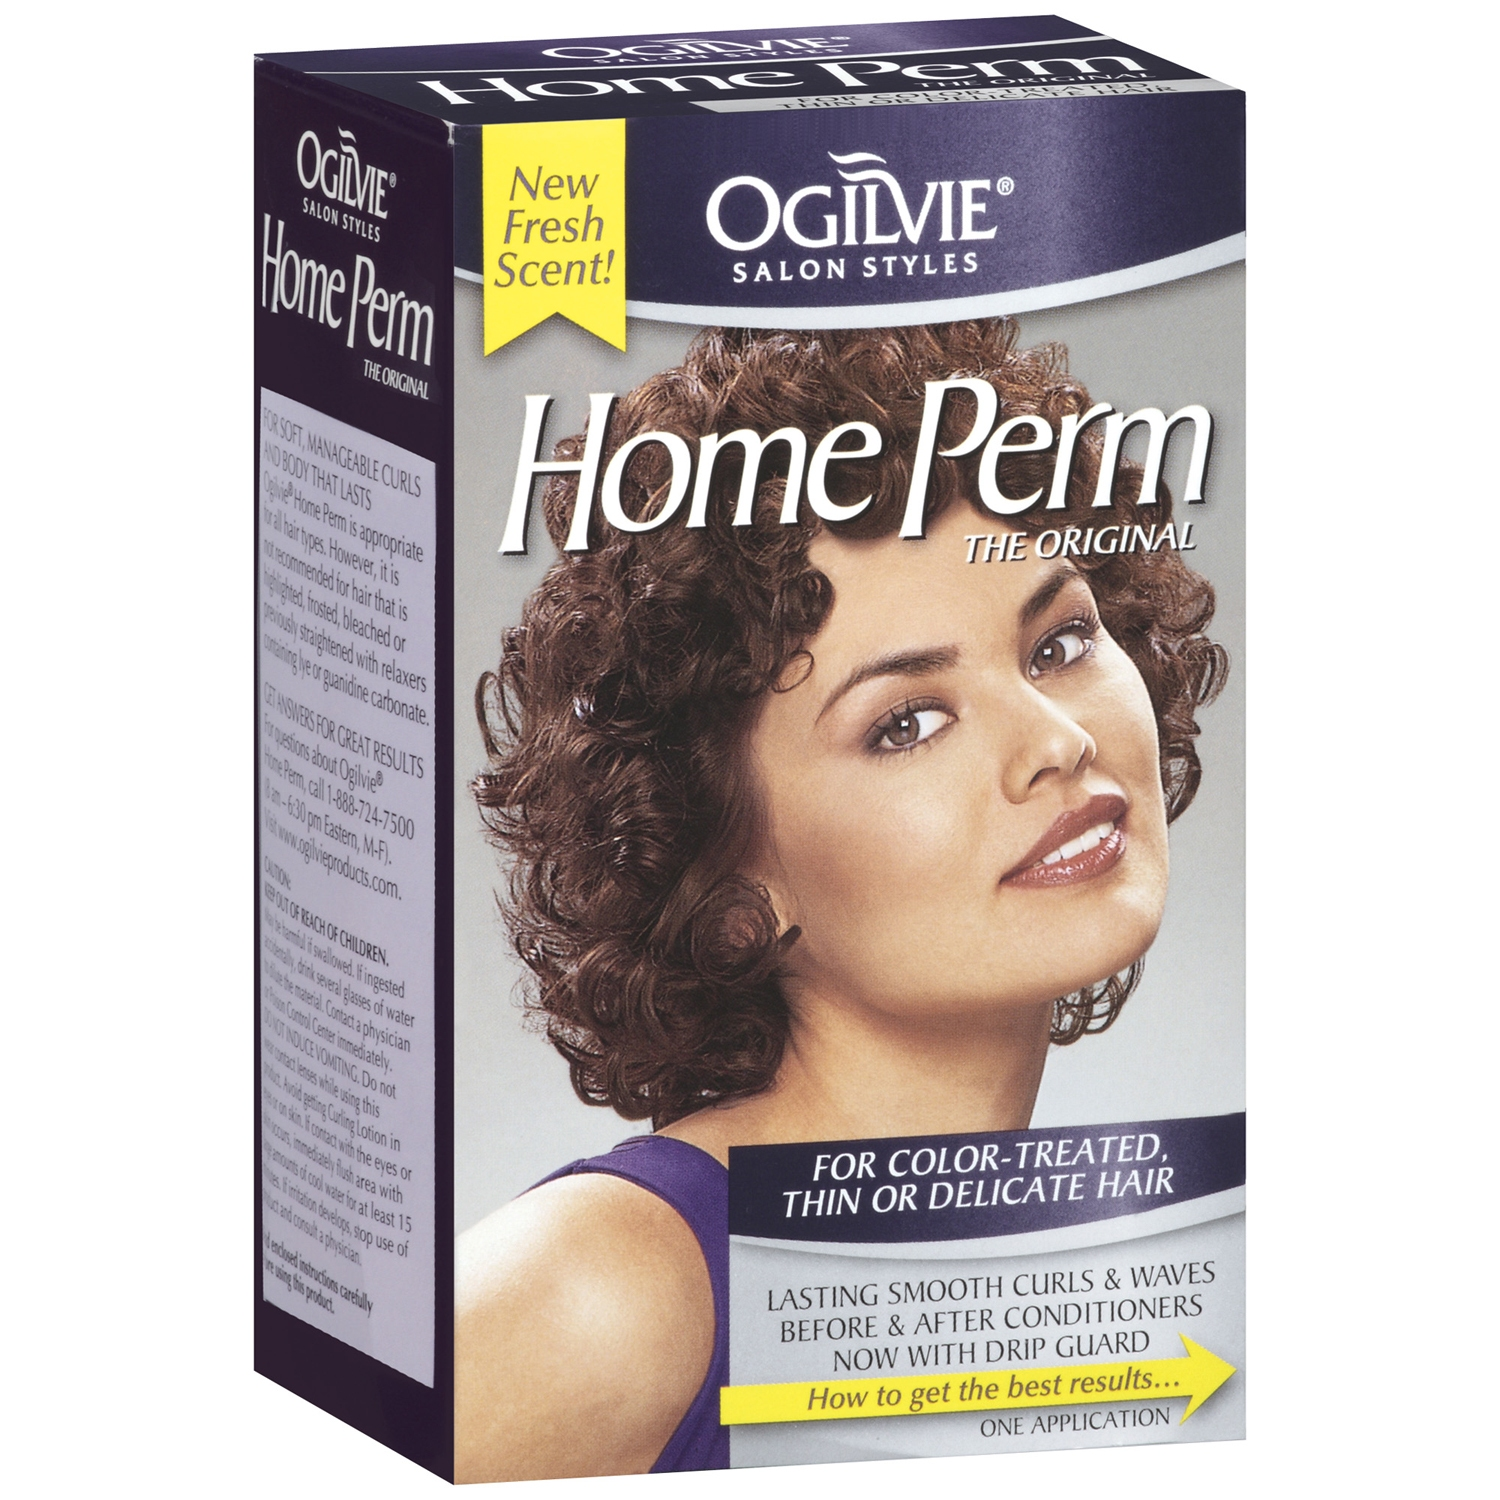 Ogilvie Salon Styles The Original For Color-Treated Thin Or Delicate Hair Home Perm 1 Ct Box